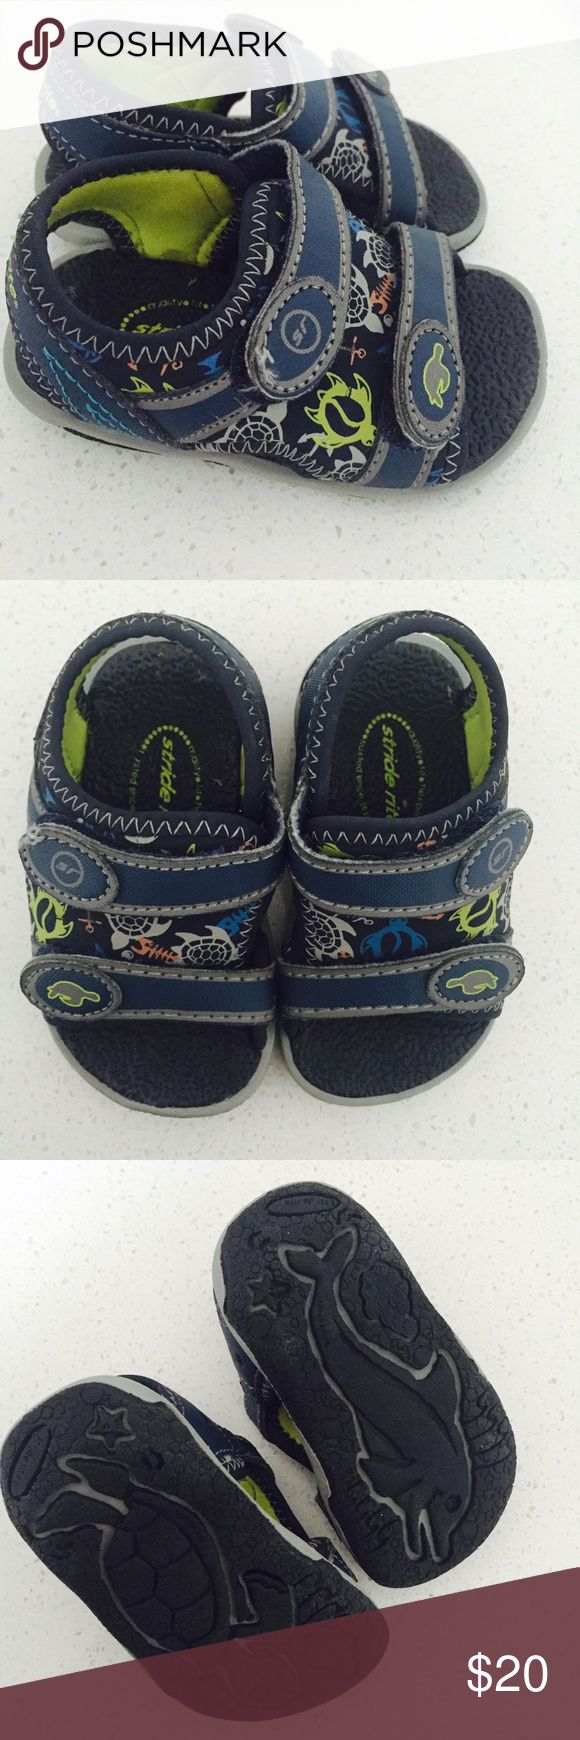 Stride Rite Everett Baby Sandals Like new, worn maybe twice, excellent condition. Purchased at Nordstrom. Navy blue with gray stitching. The shoes feature two Velcro straps and can be worn in the water as well, they have a turtle, fish and sea anchor design. So versatile and perfect for those early walkers.  Features: Synthetic and neoprene Rubber sole Water friendly Sleek, flexible, lightweight outsole Product Information Product Dimensions7.1 x 5.5 x 3.1 inches Item Weight10.4 ounces…